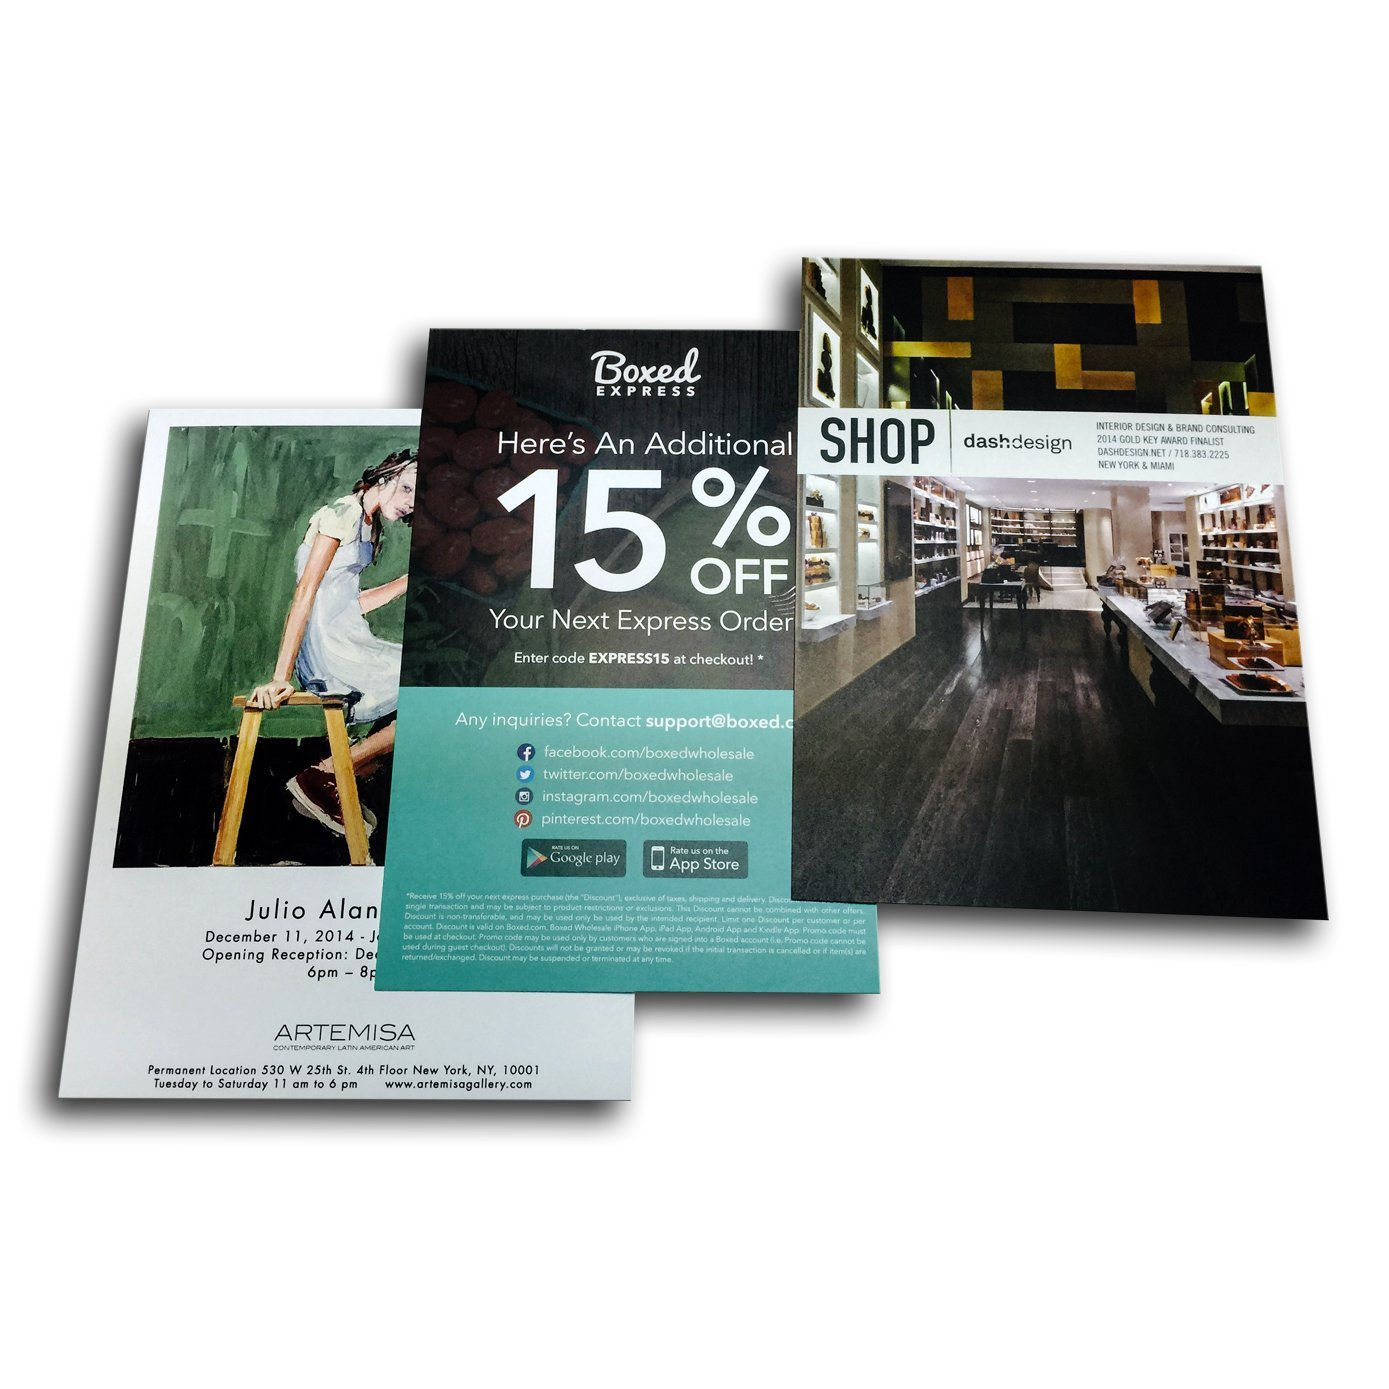 Custom Printed Full Color Postcards, 4''x 6''- 2 Sided Standard at Discount Prices- Upload Your Own Design. by Your Print Shop